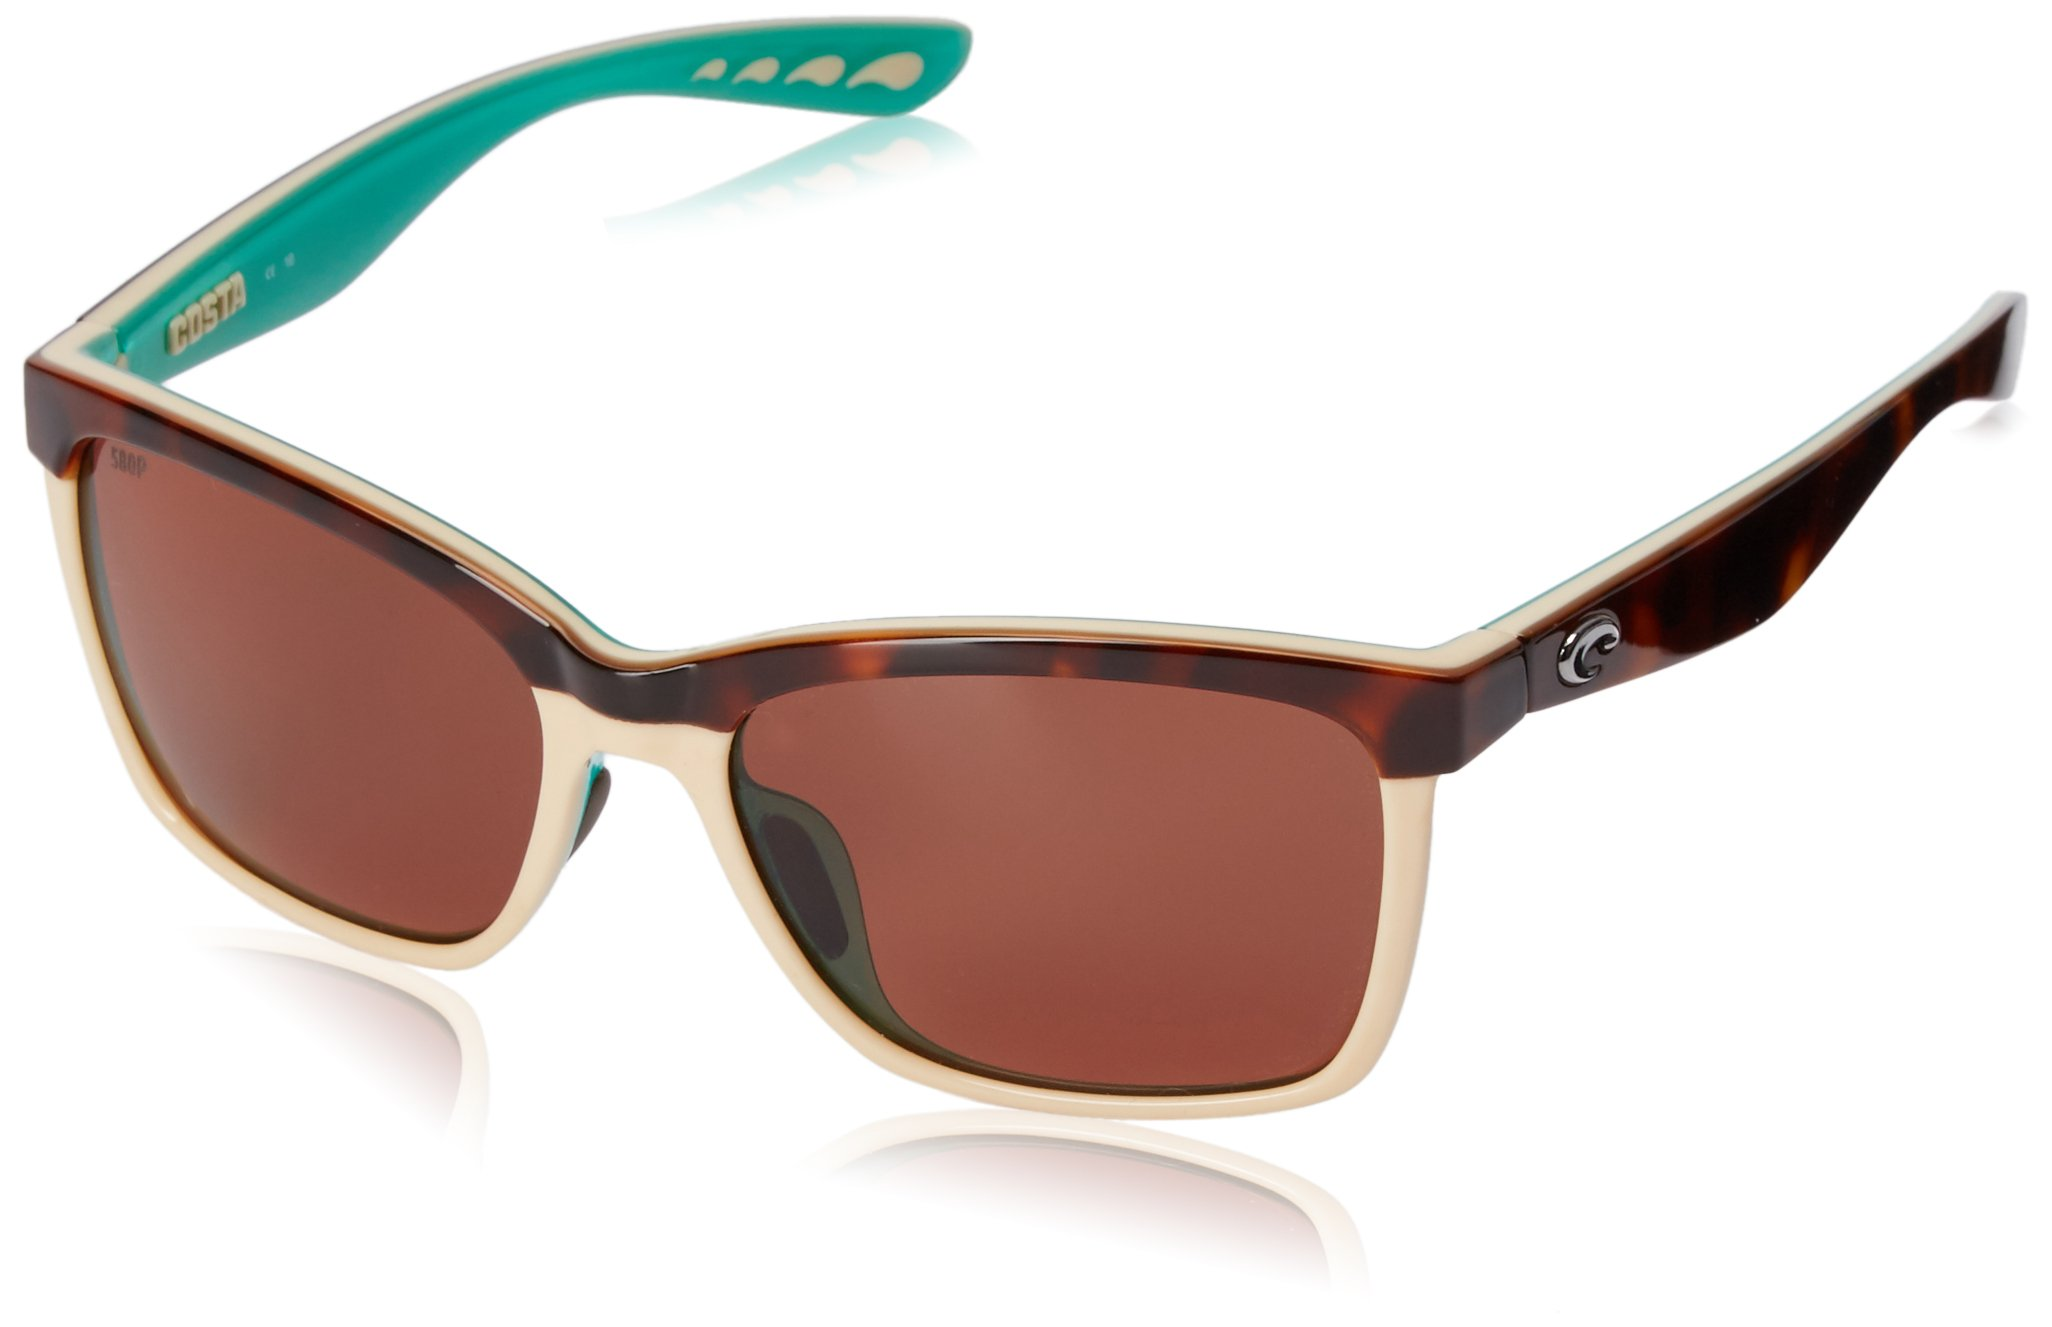 Costa del Mar Women's Anaa ANA 105 OCP Polarized Cateye Sunglasses, Retro Tort/Cream/Mint, 55.4 mm